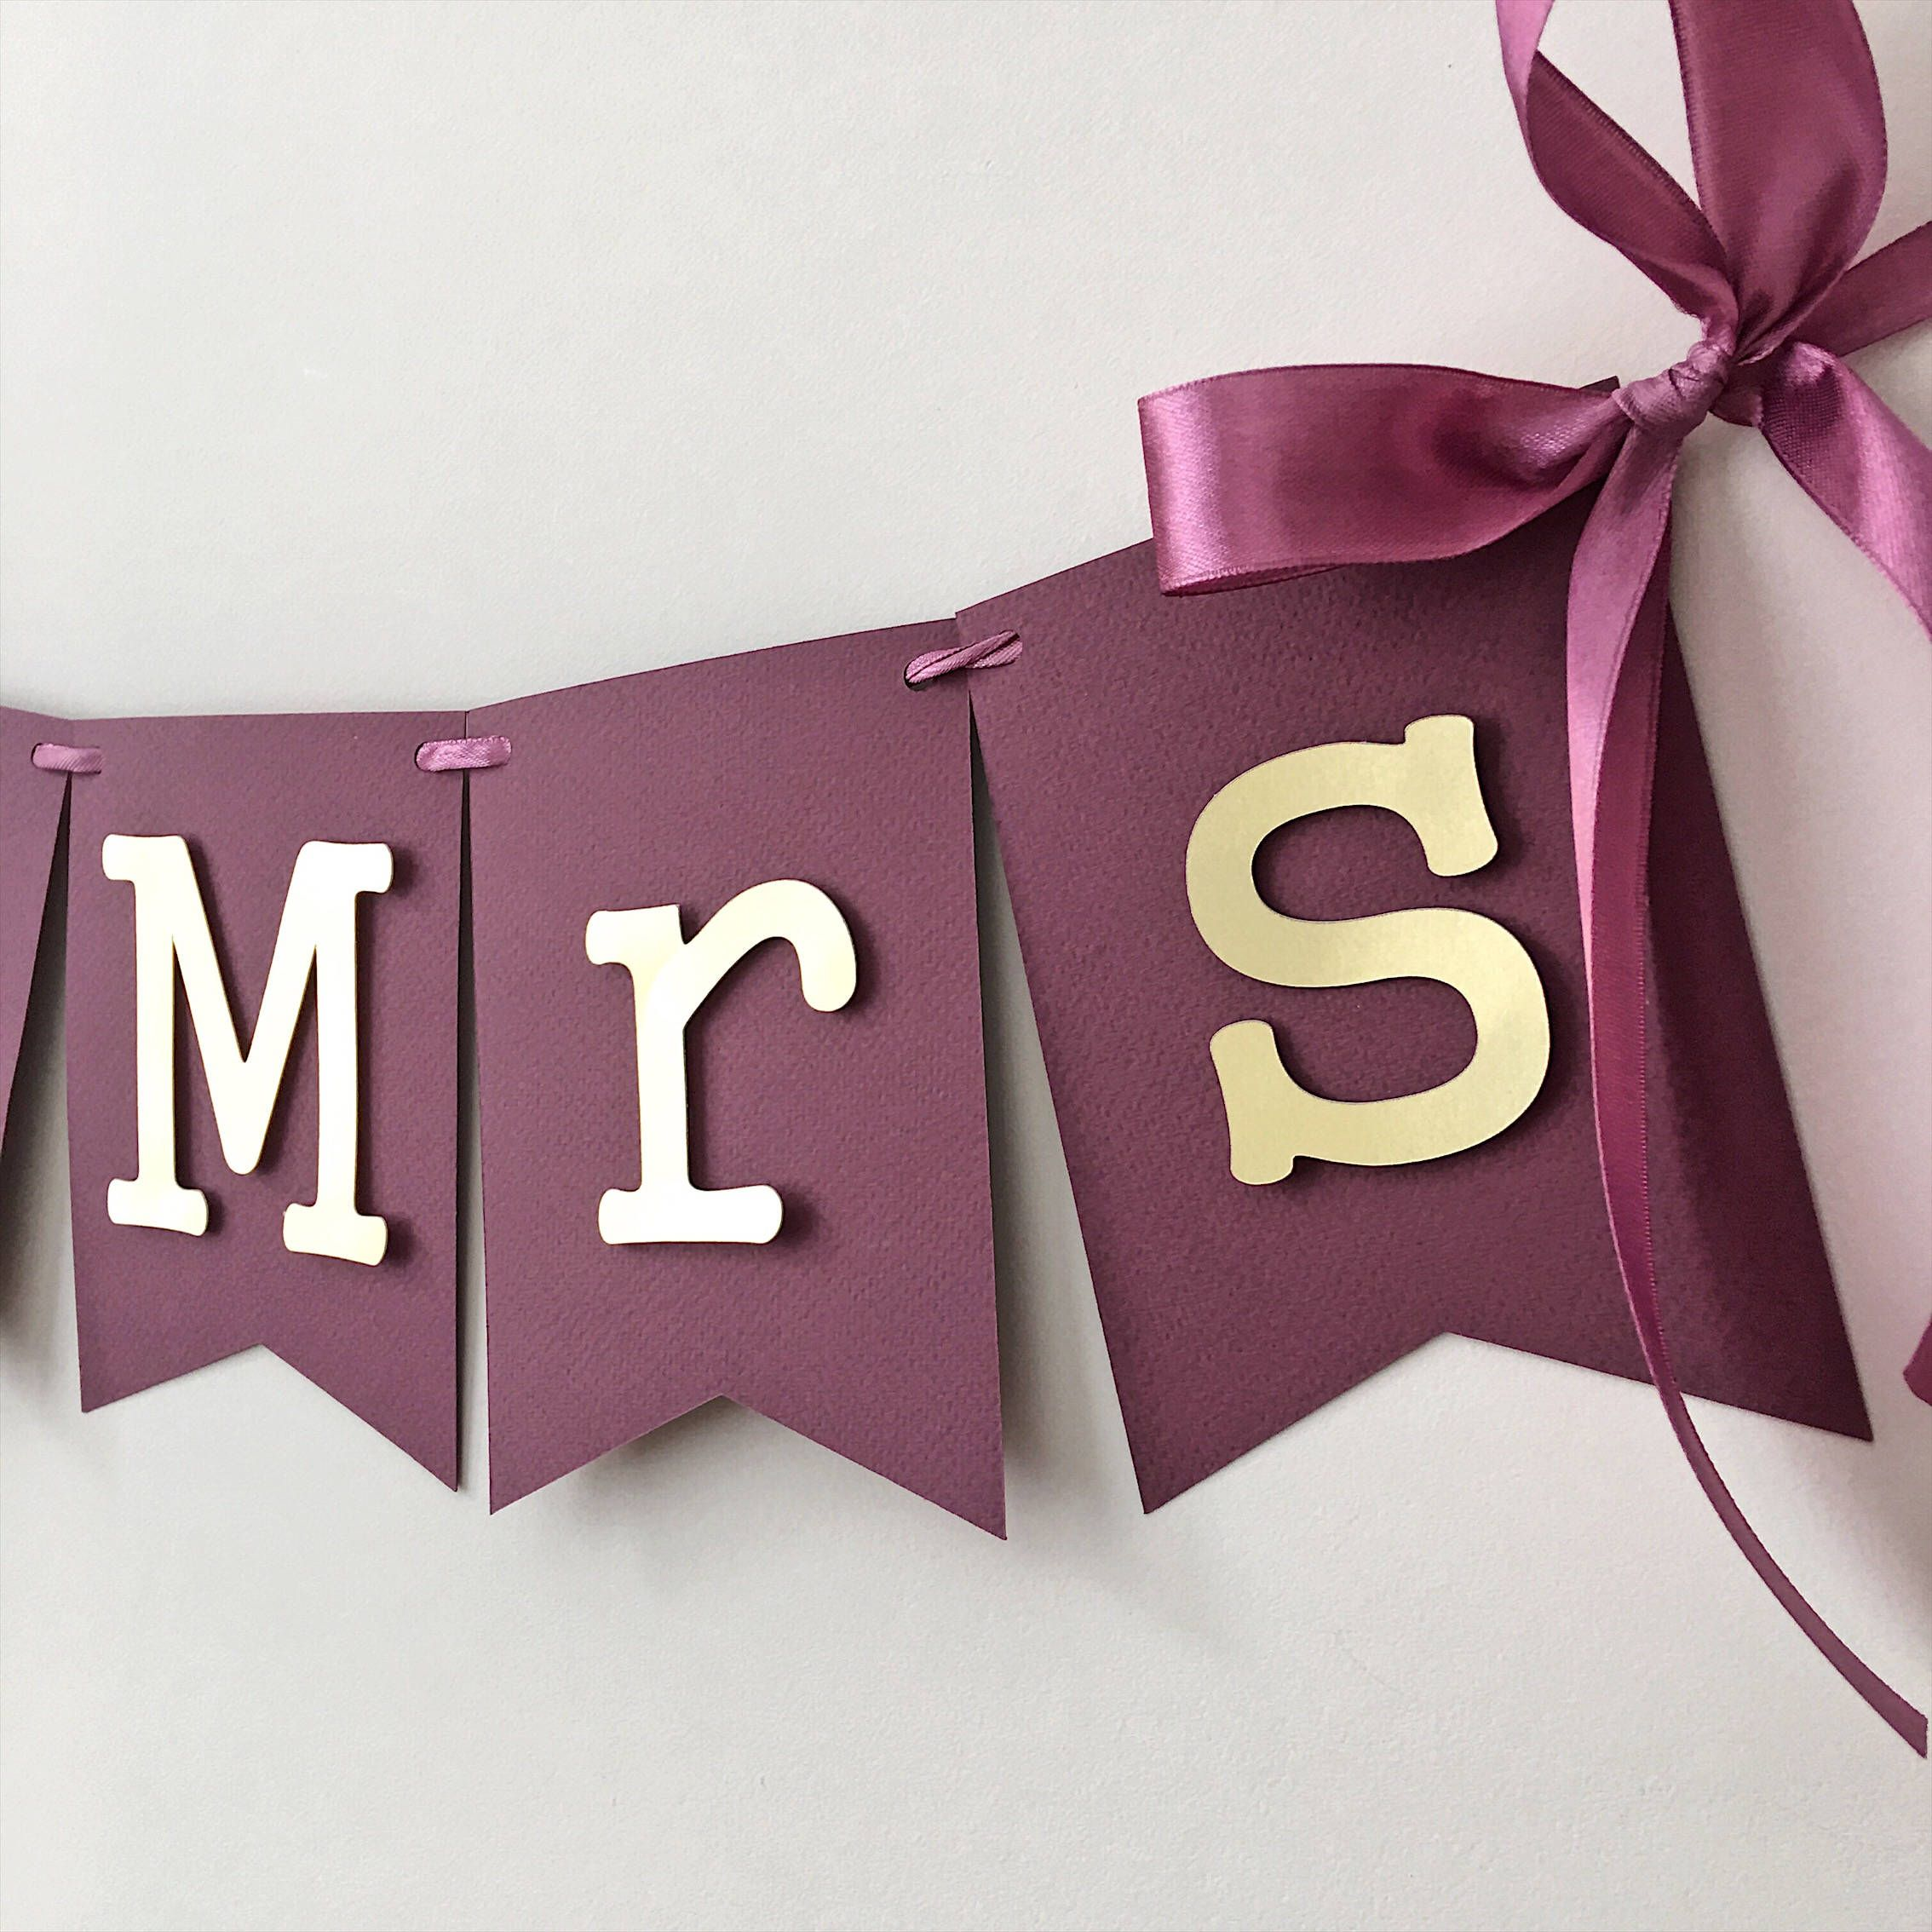 Engagement Party Banners  Couples Shower Banner  Purple Soon to be Mr and Mrs Banner  Bride to Be Sign  Engagement Party Ideas